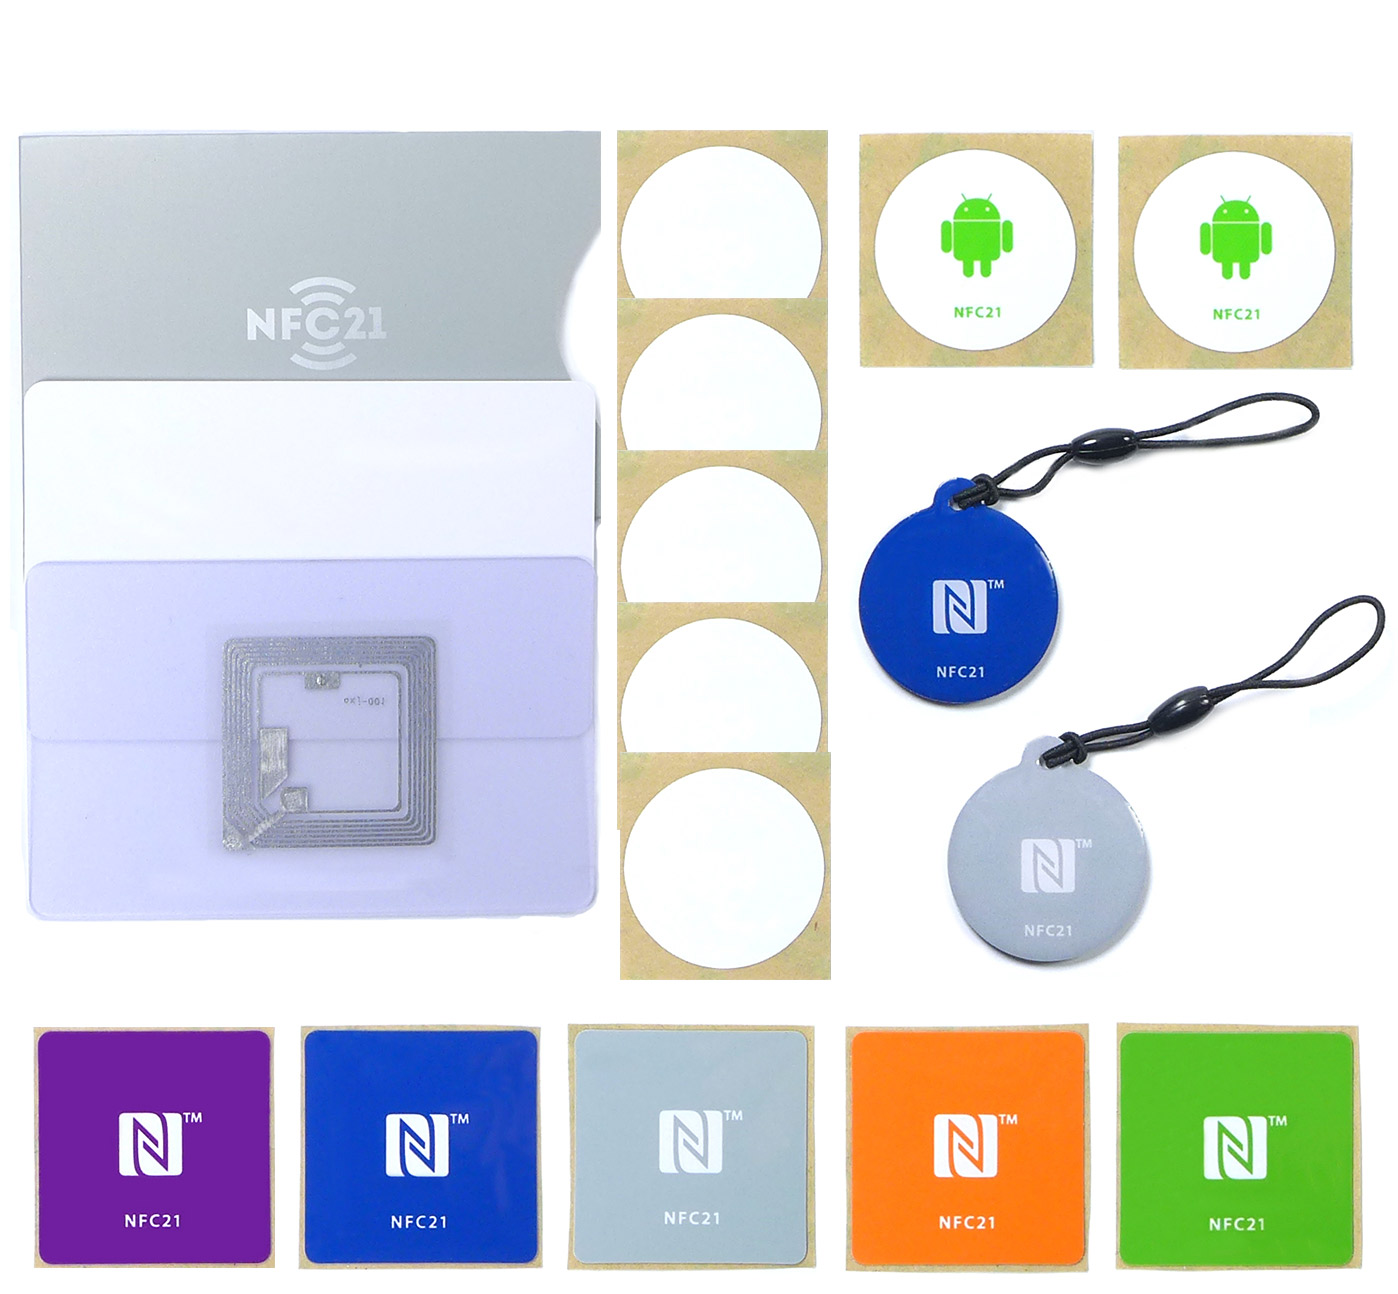 htc how to use nfc